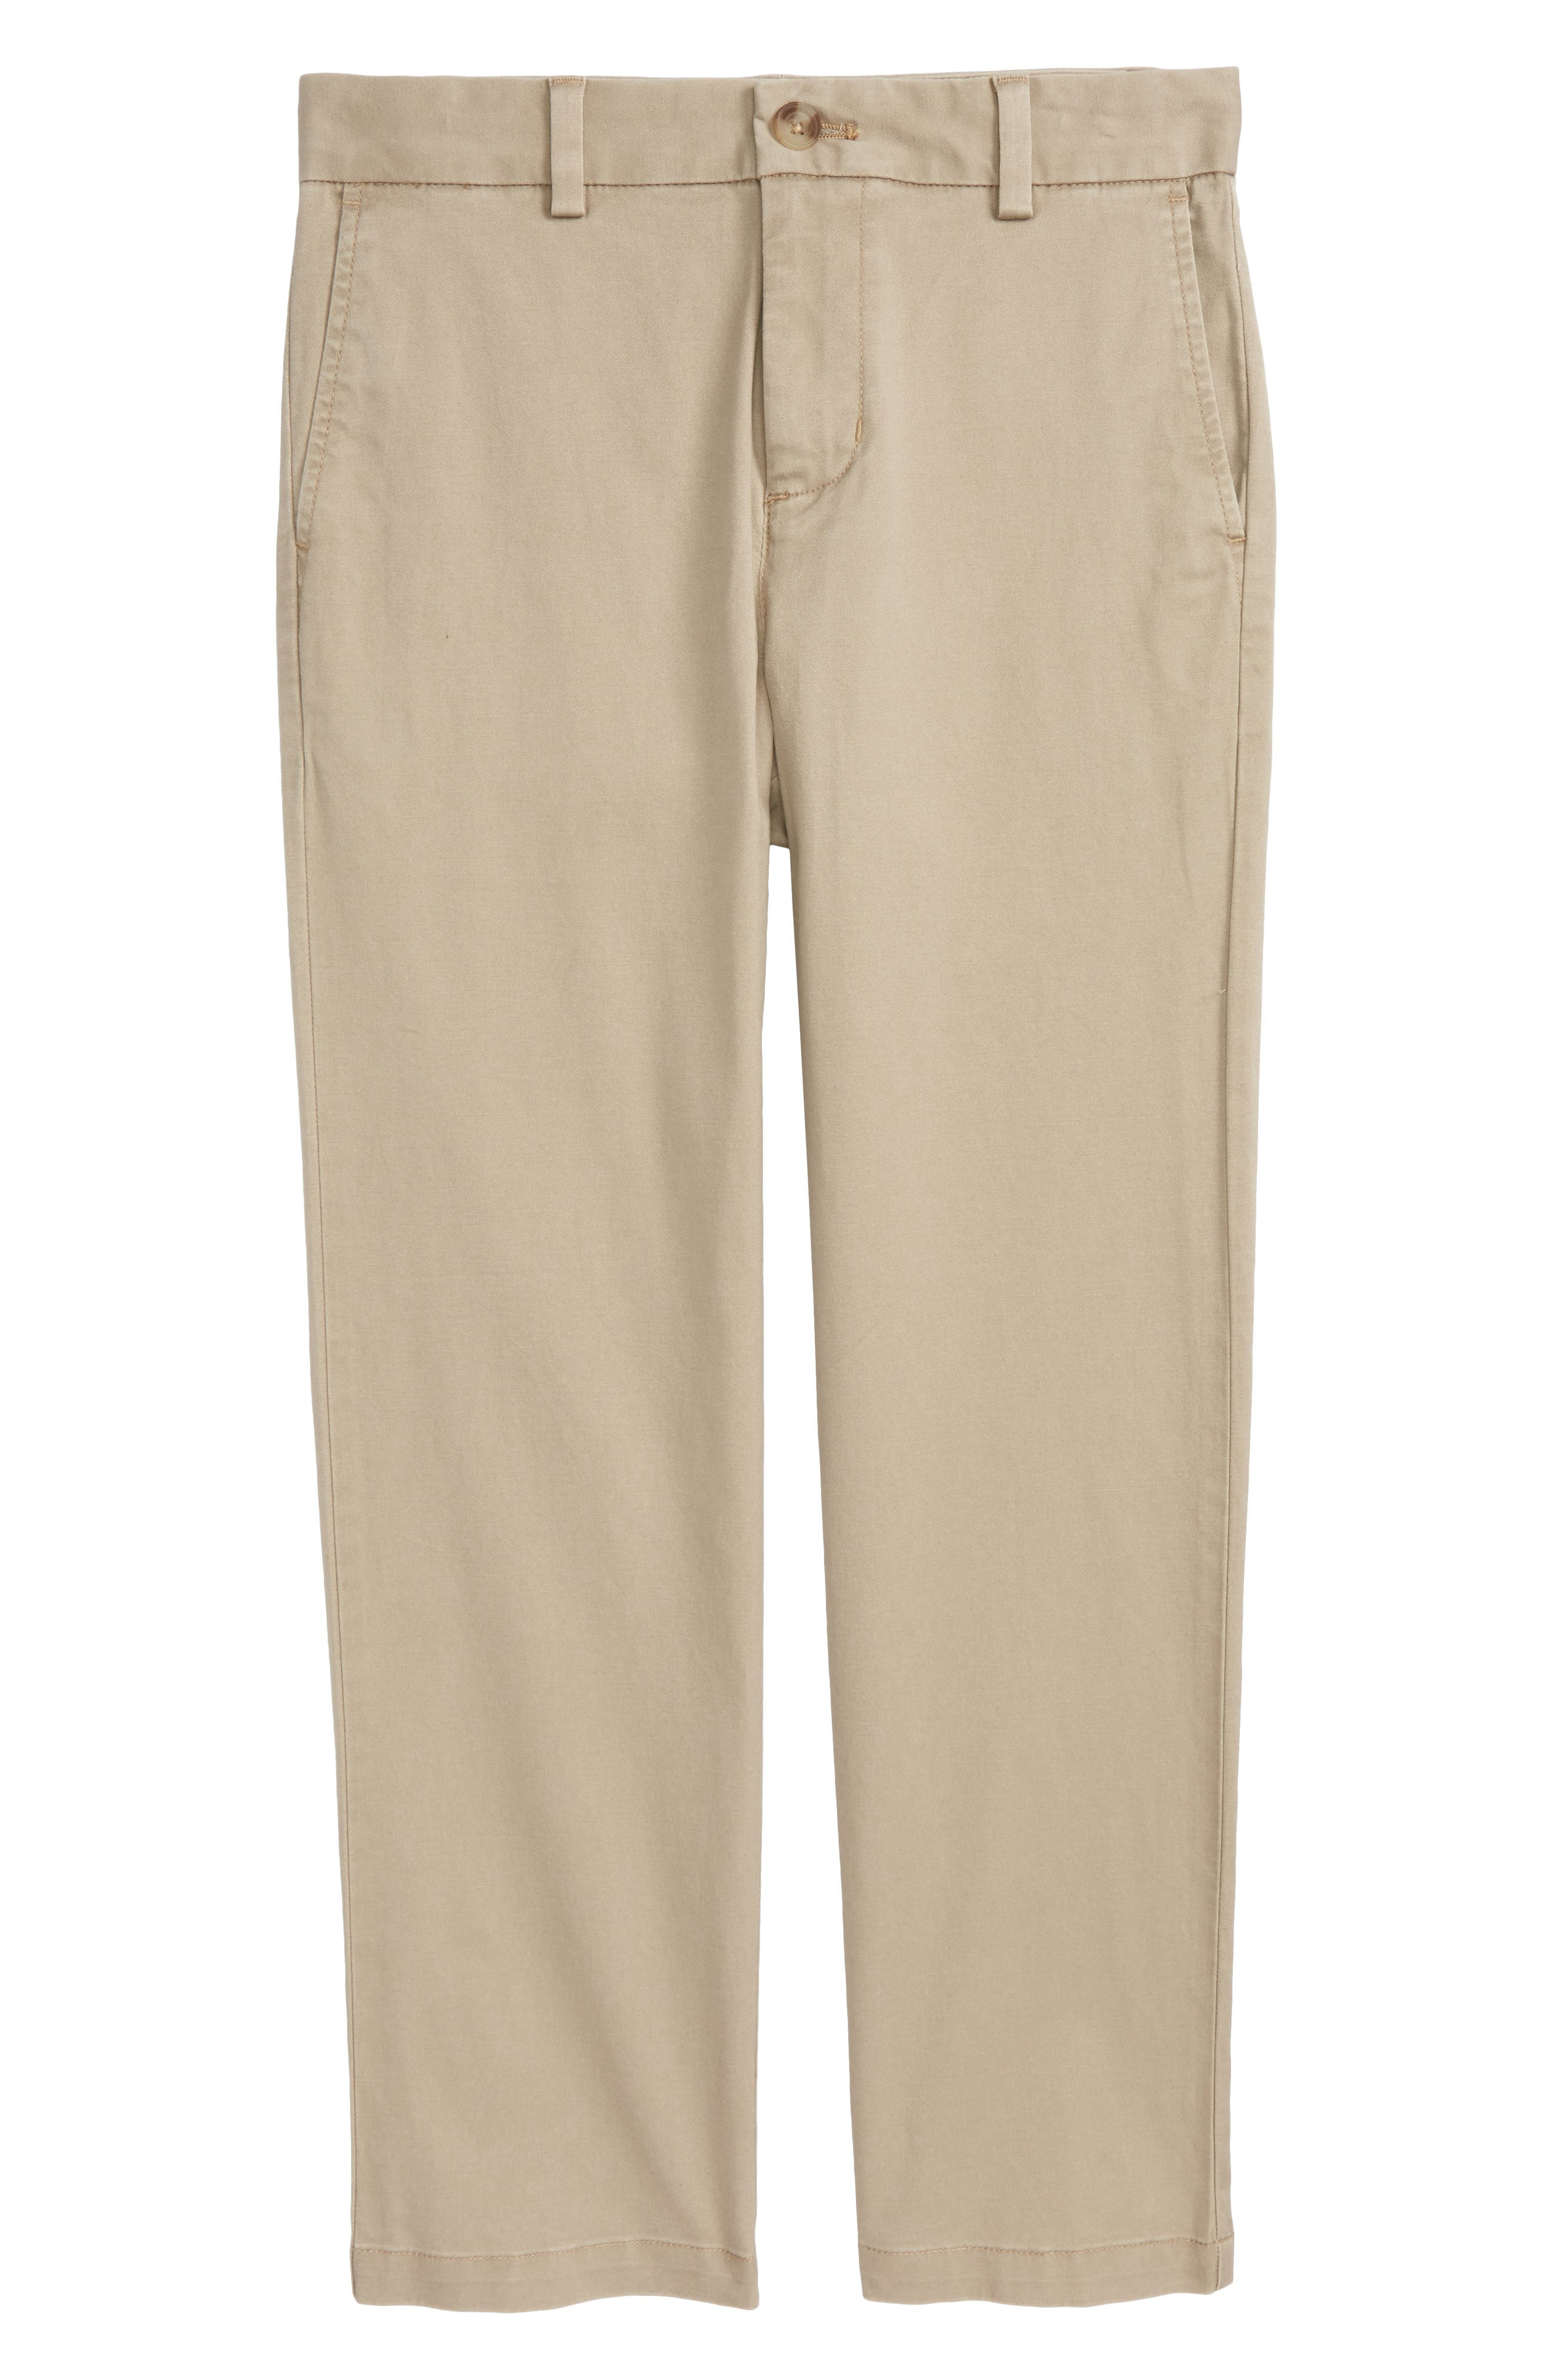 vineyard vines Breaker Pants (Toddler Boys & Little Boys)